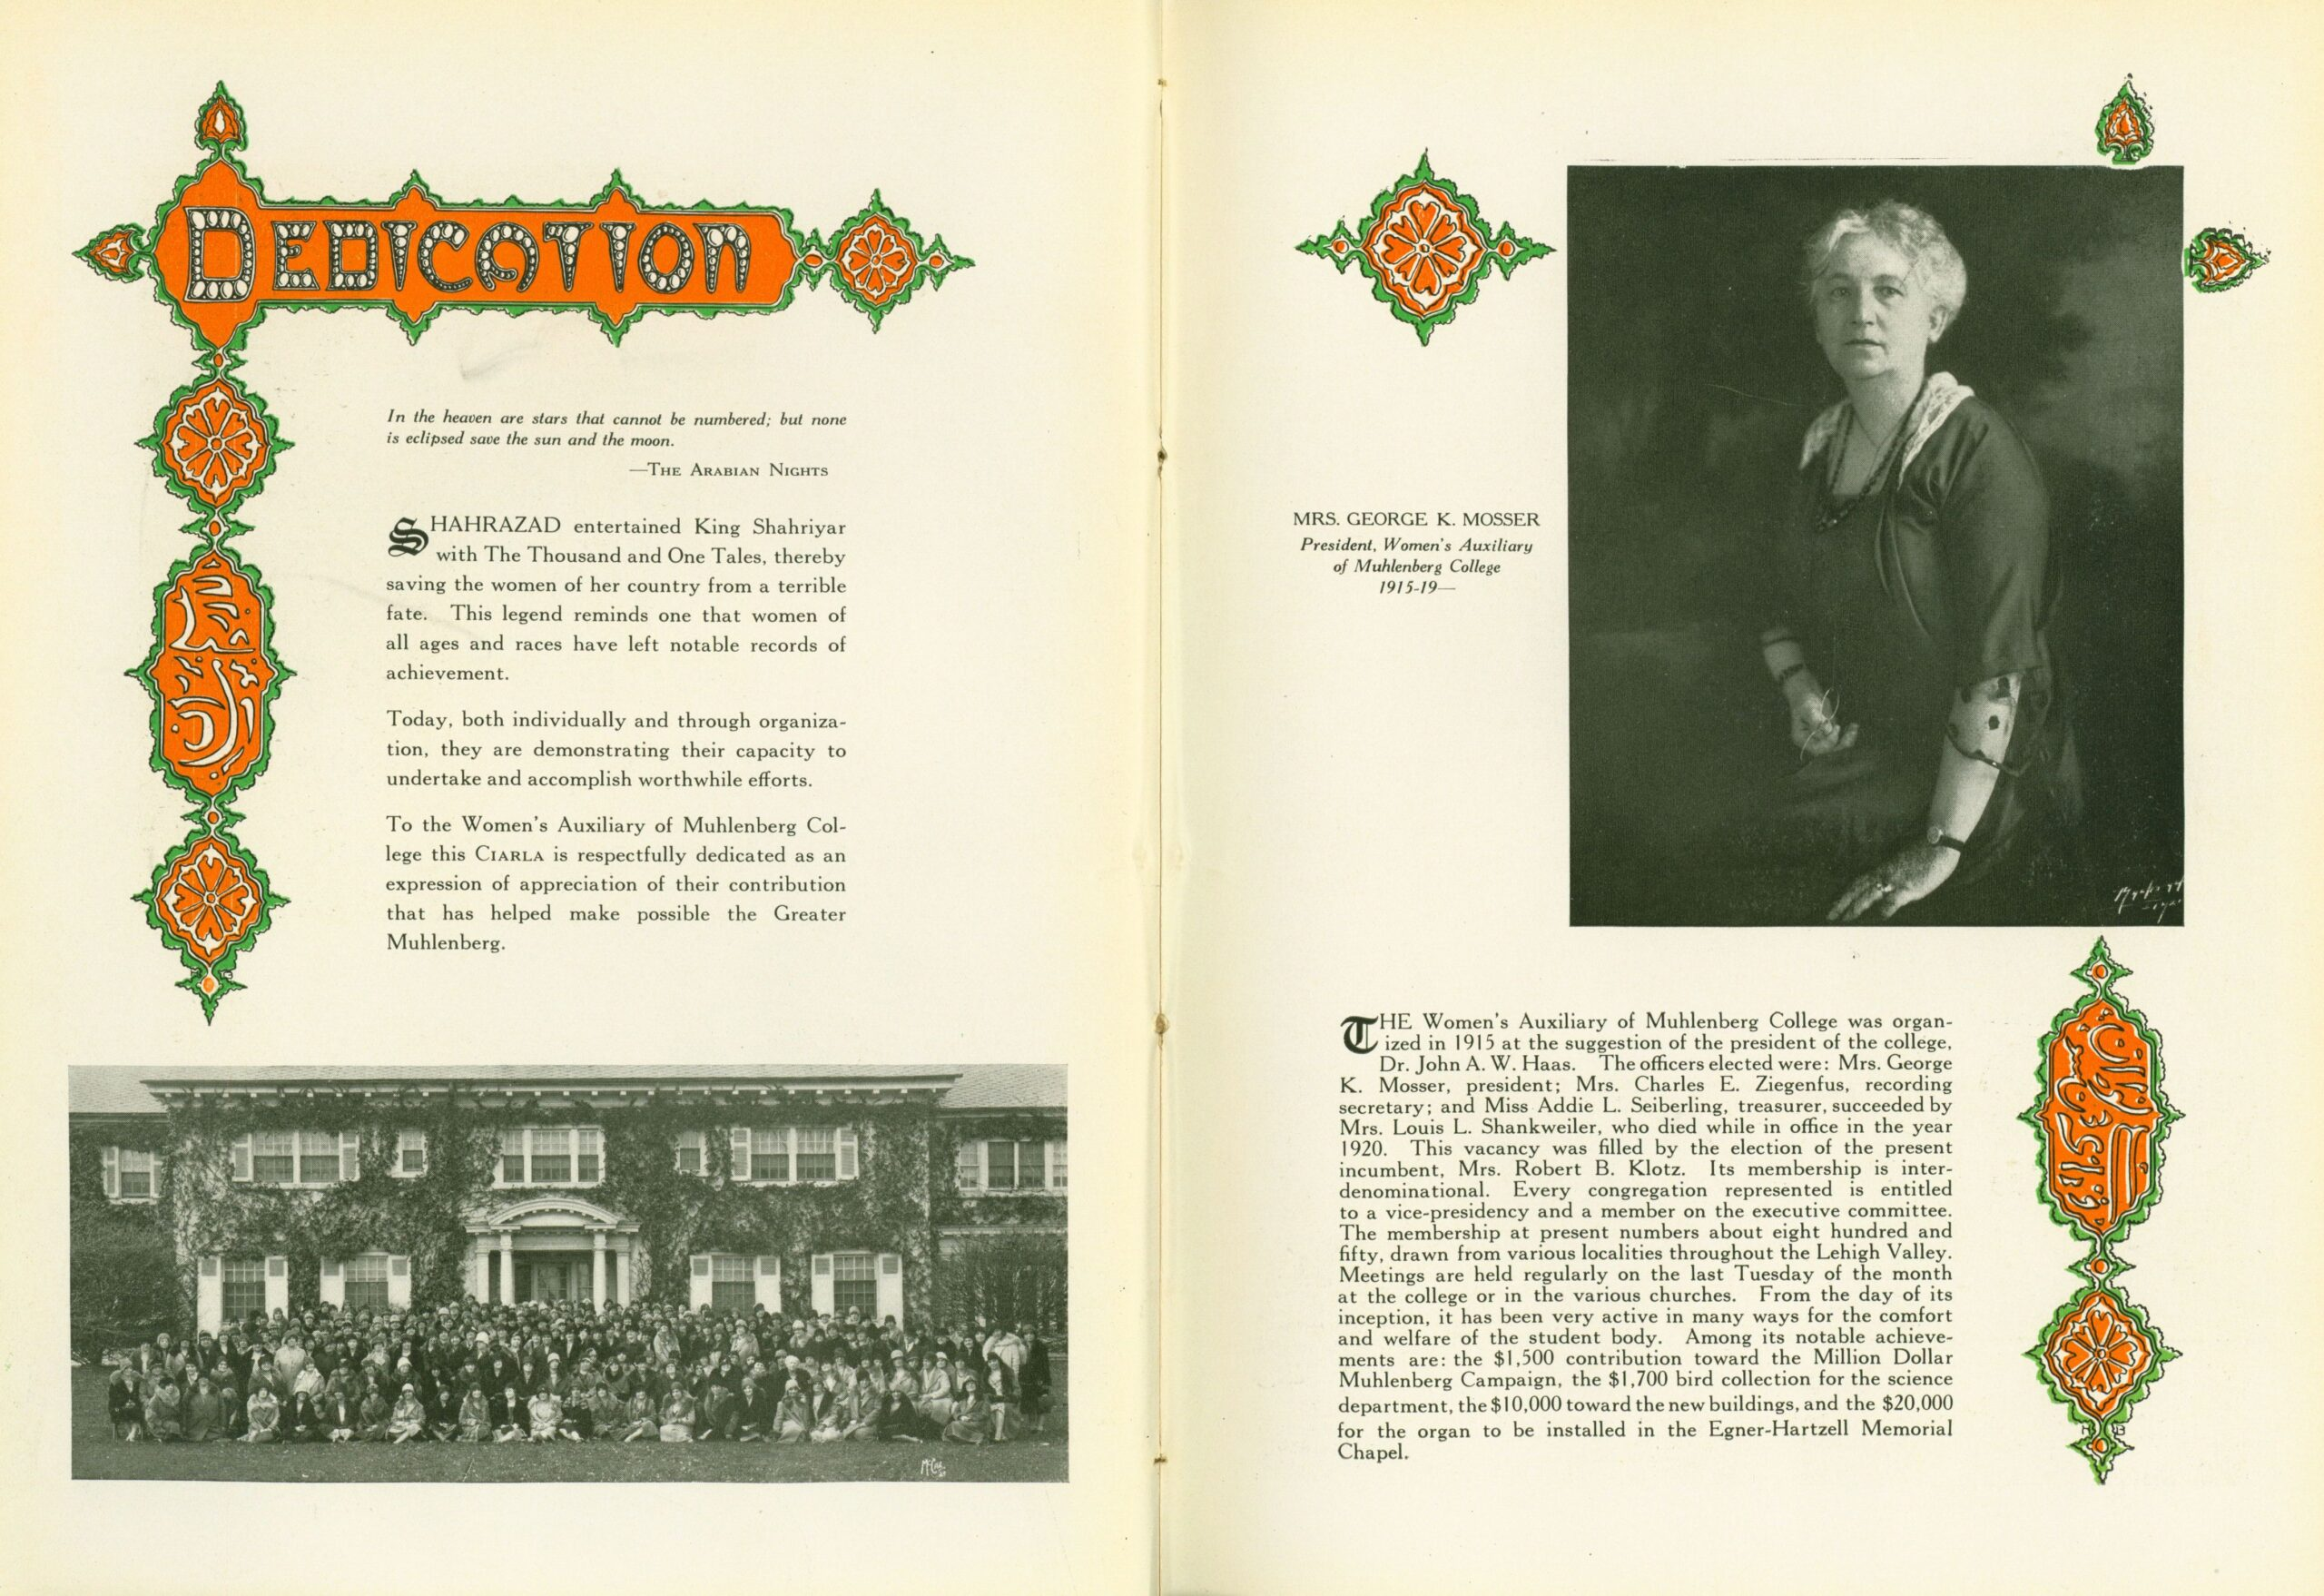 1931 Ciarla page dedicated to the Women's Auxiliary